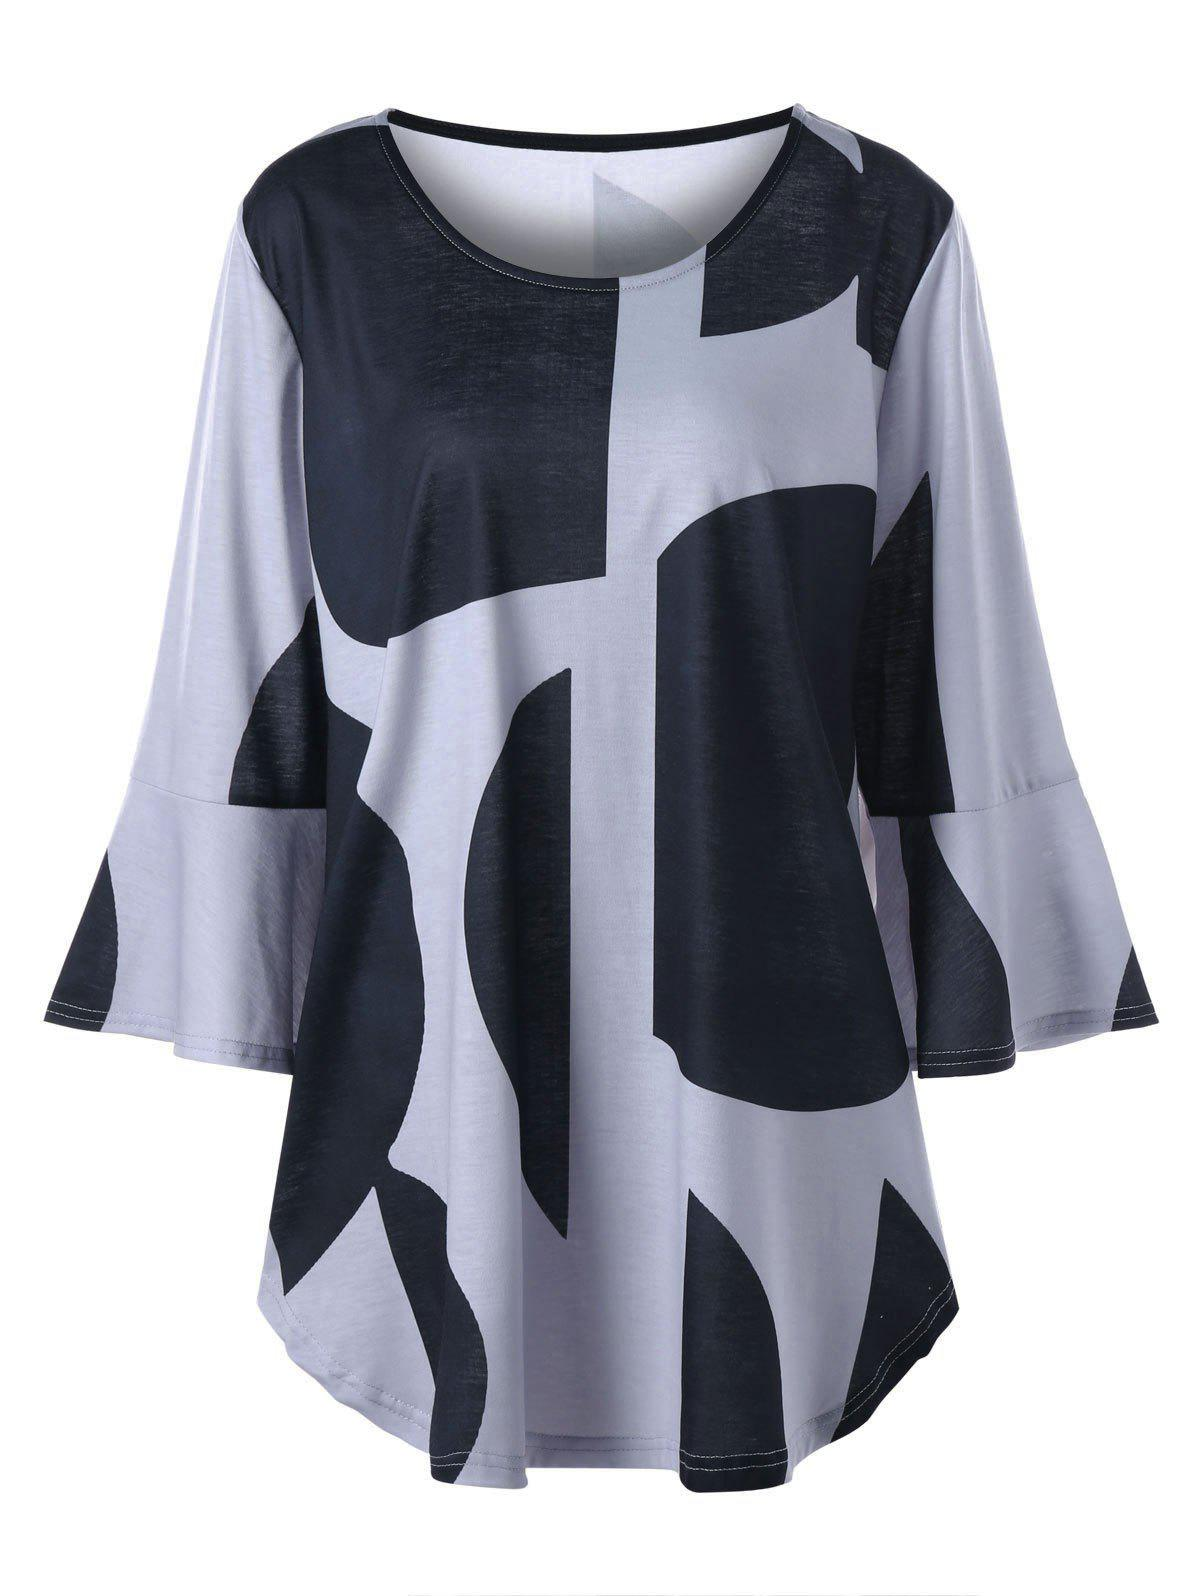 Plus Size Flare Sleeve Curved Hem TopWOMEN<br><br>Size: 5XL; Color: BLACK AND GREY; Material: Polyester,Spandex; Shirt Length: Long; Sleeve Length: Full; Collar: Scoop Neck; Style: Casual; Season: Fall,Spring; Pattern Type: Others; Weight: 0.3000kg; Package Contents: 1 x Top;